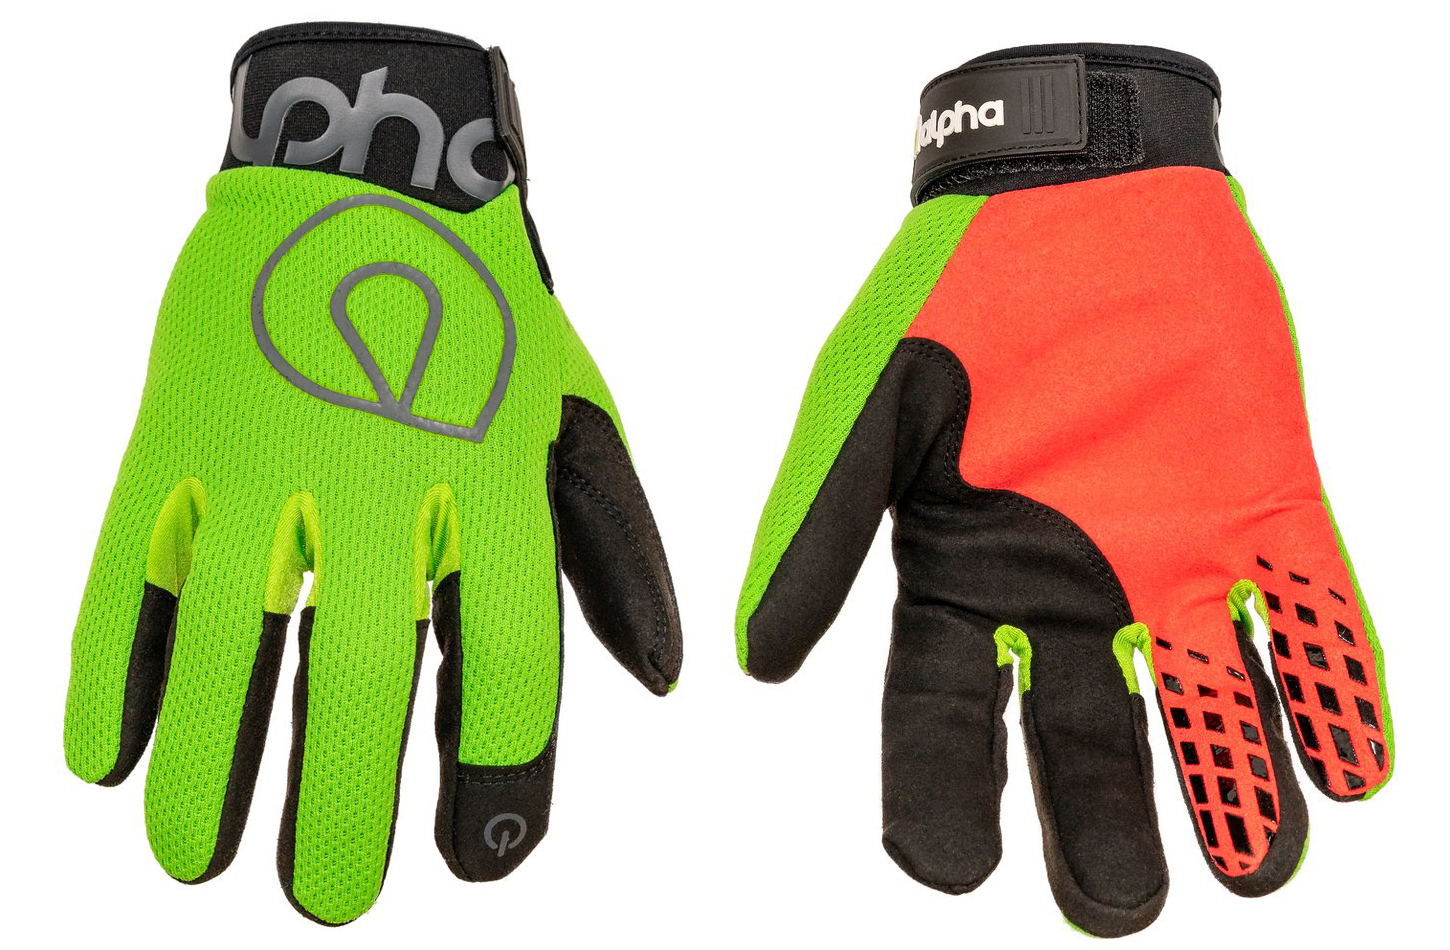 Alpha Gloves AG02-04-M Gloves, Shop, The Standard, Hook and Loop Closure, Neoprene Cuff, Mesh Top, Touch Screen Capable, Synthetic Leather Palm, Fluorescent Green, Medium, Pair